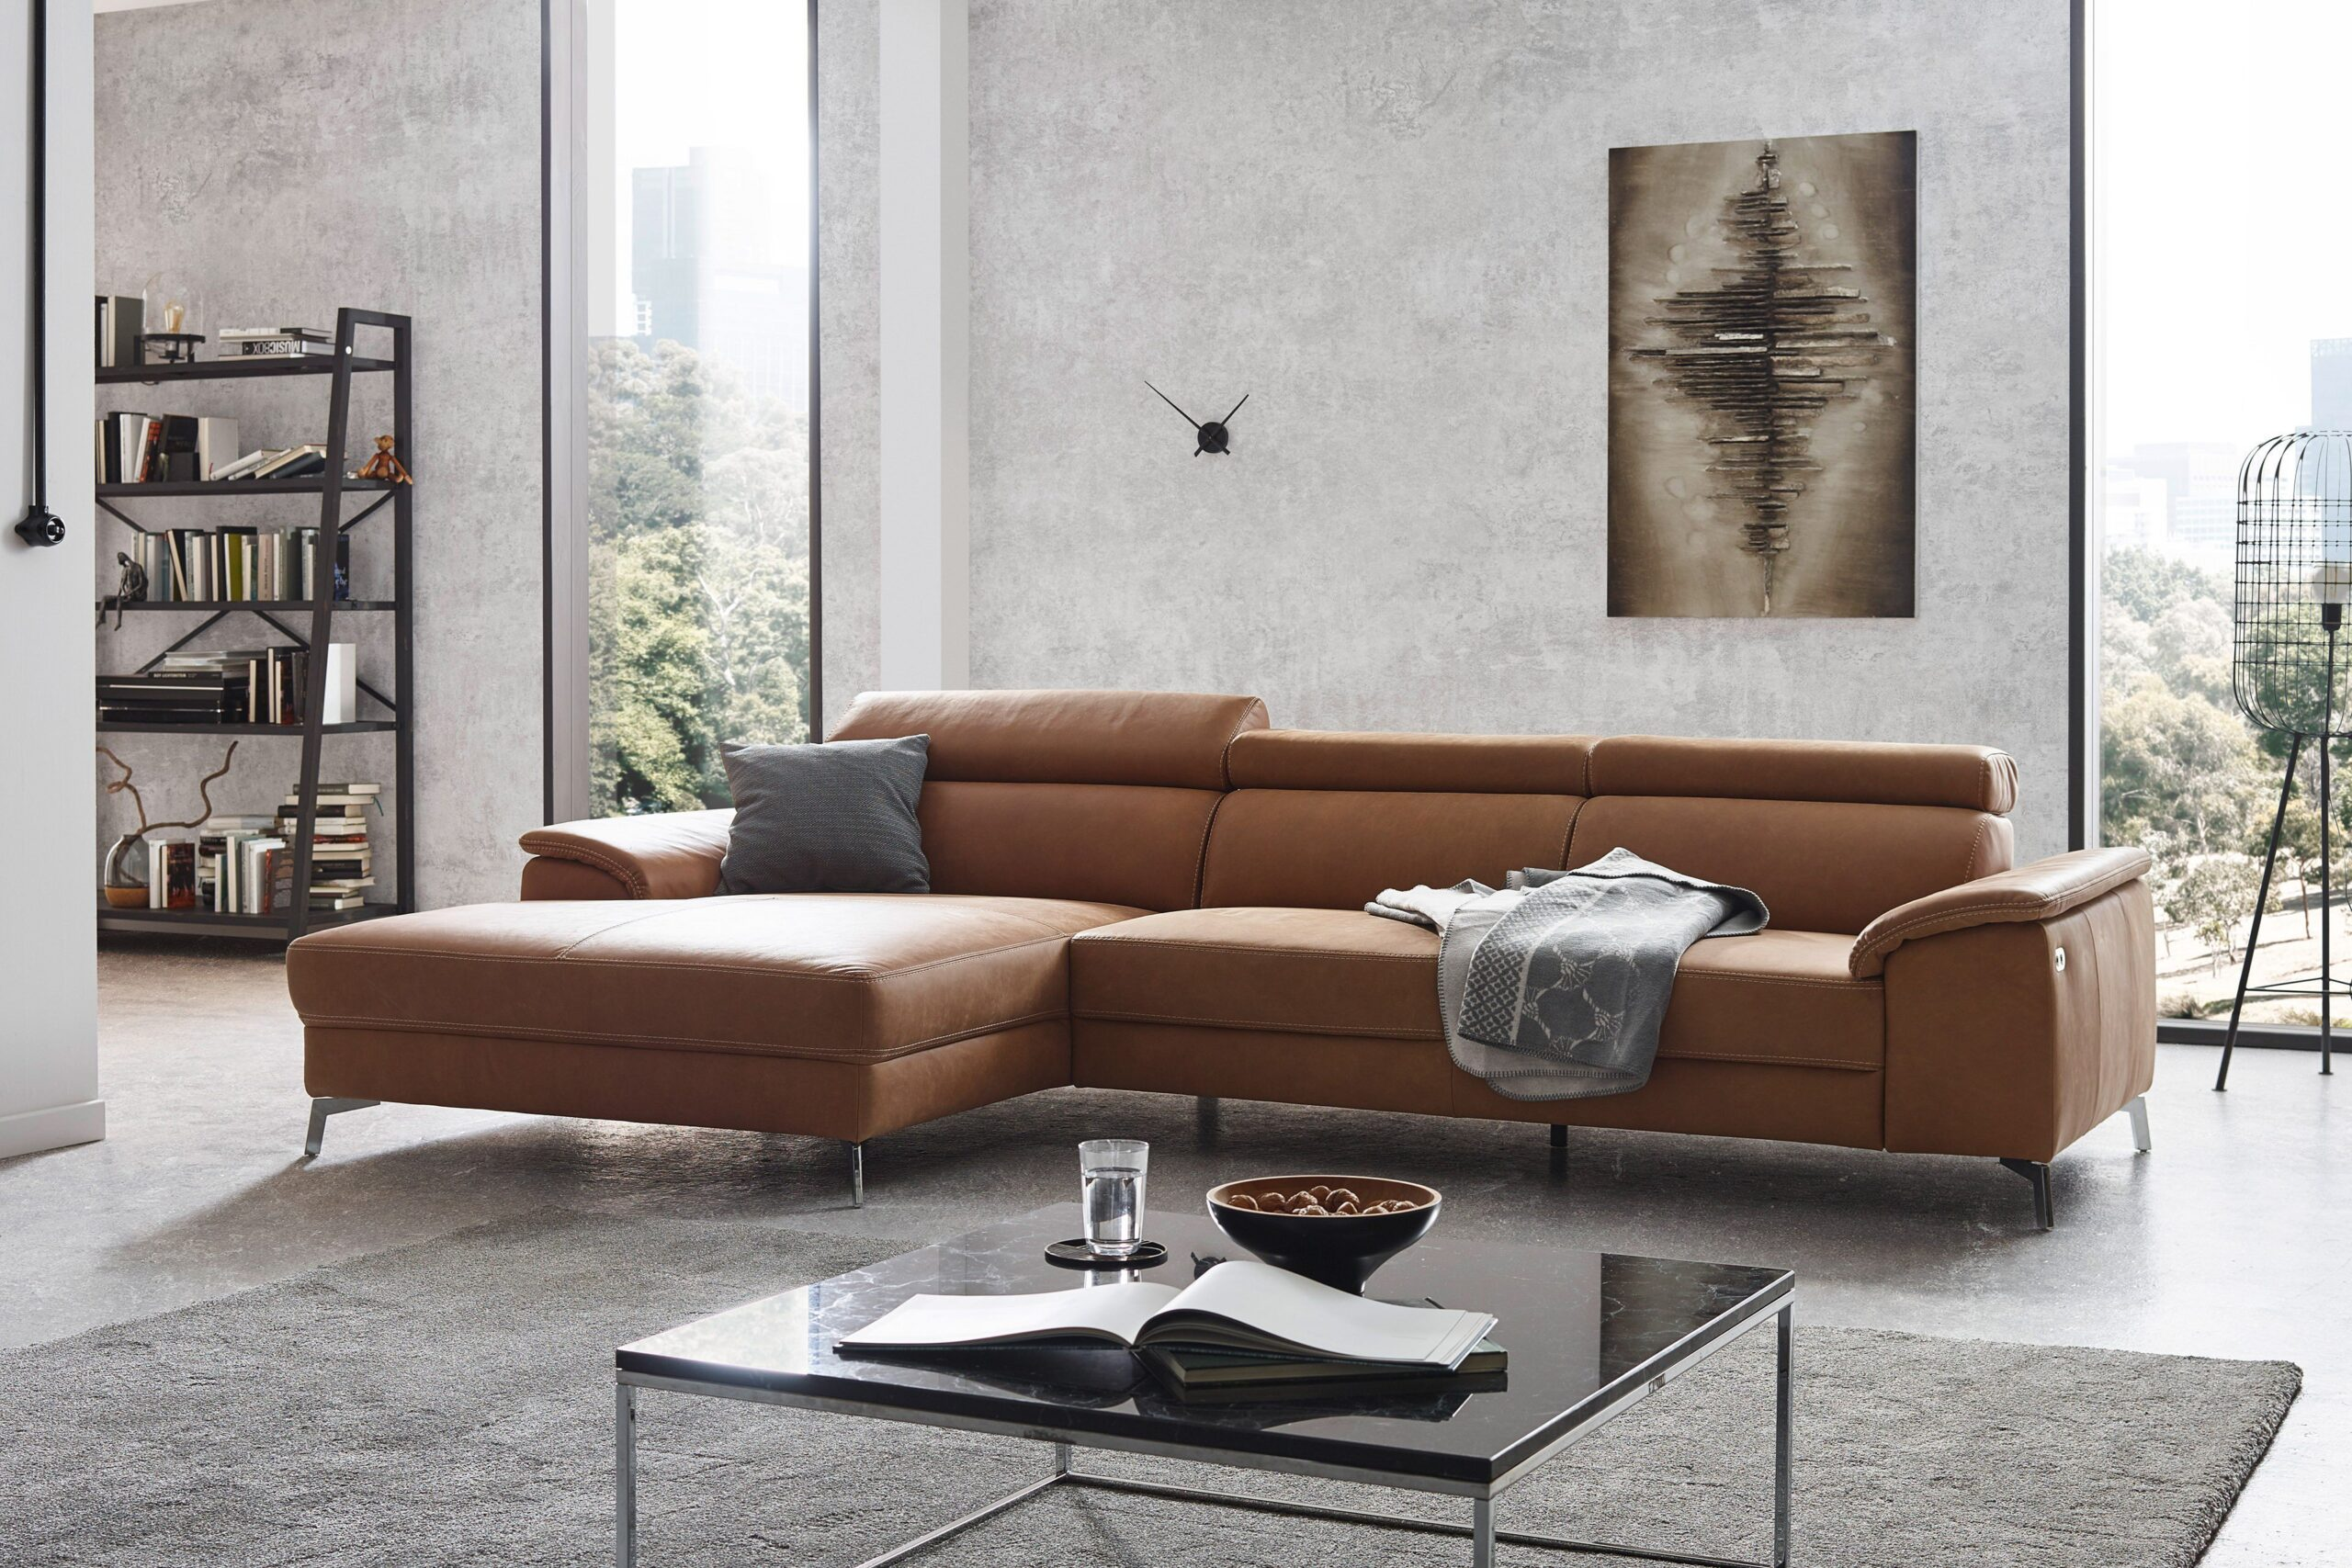 Full Size of Langes Sofa Colano Von Candy Ledersofa Ausfhrung Links Macchiato Sofas Antikes 3 Teilig Boxspring Chesterfield Günstig Wk Ausziehbar Garten Ecksofa Patchwork Sofa Langes Sofa